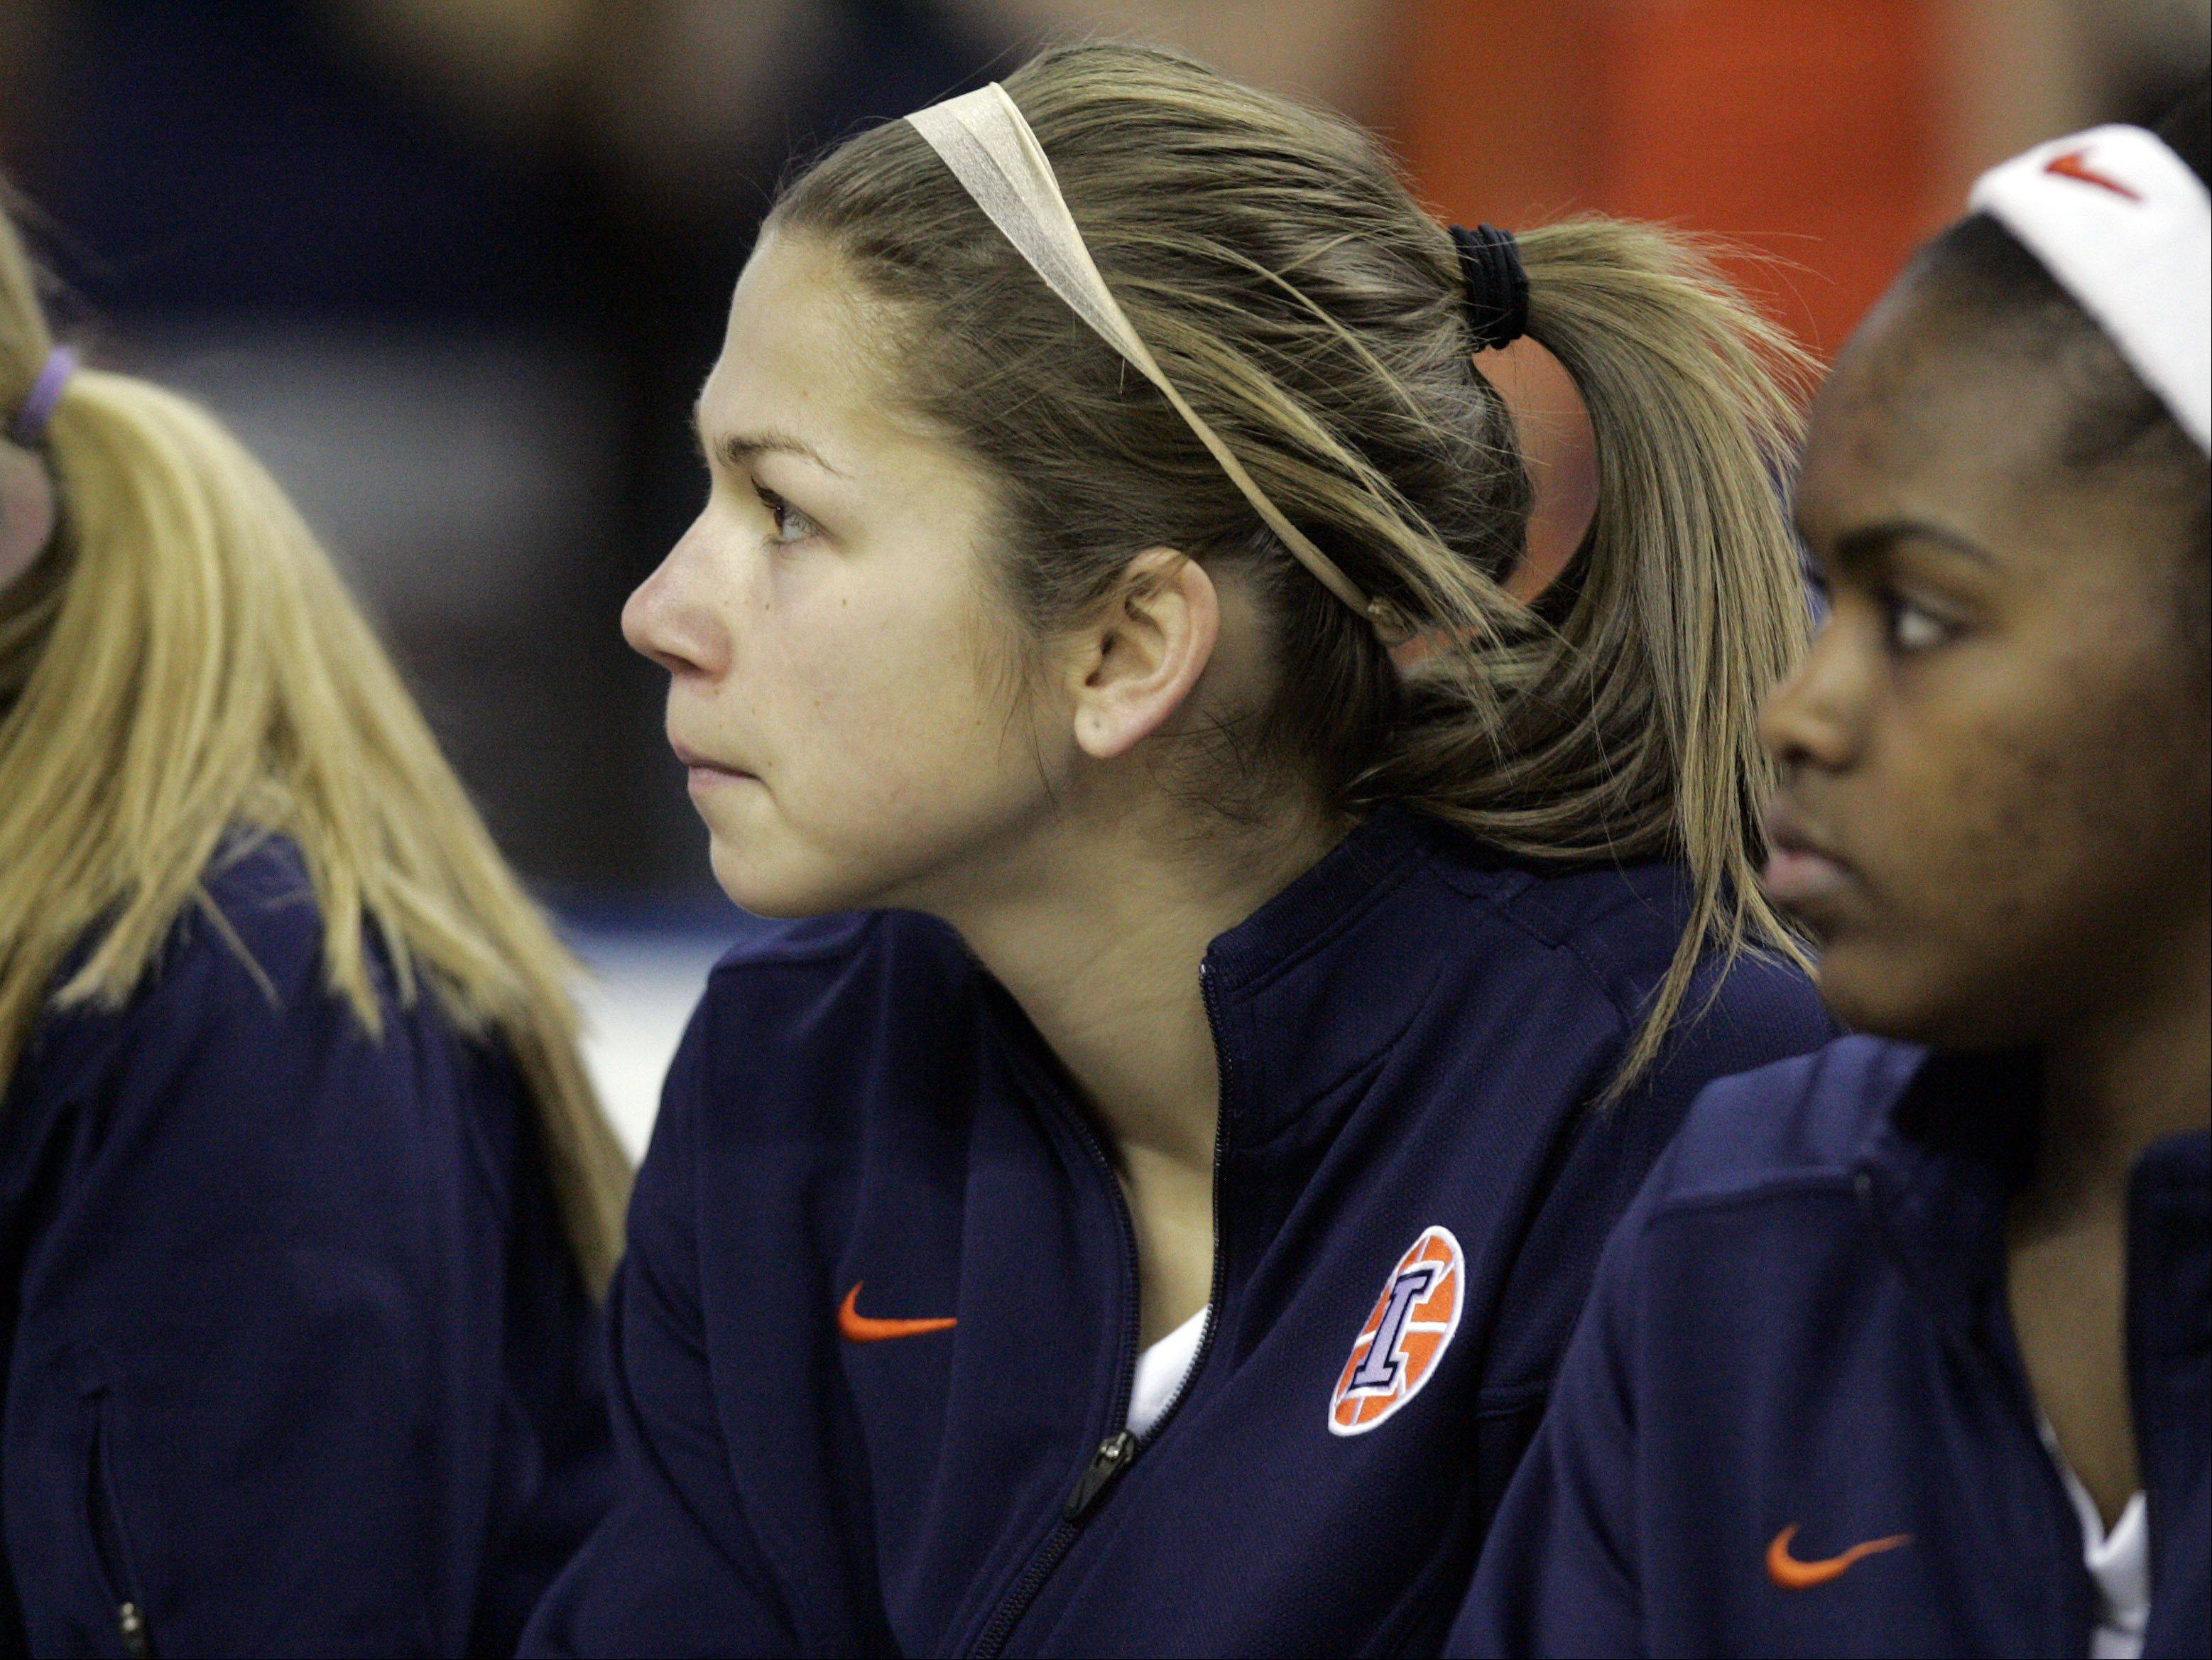 Illini guard Cassie Dumoulin watches from the bench during action Thursday at the Big Ten Women's Basketball Tournament at the Sears Centre in Hoffman Estates. Wisconsin advanced with a 58-57 win.